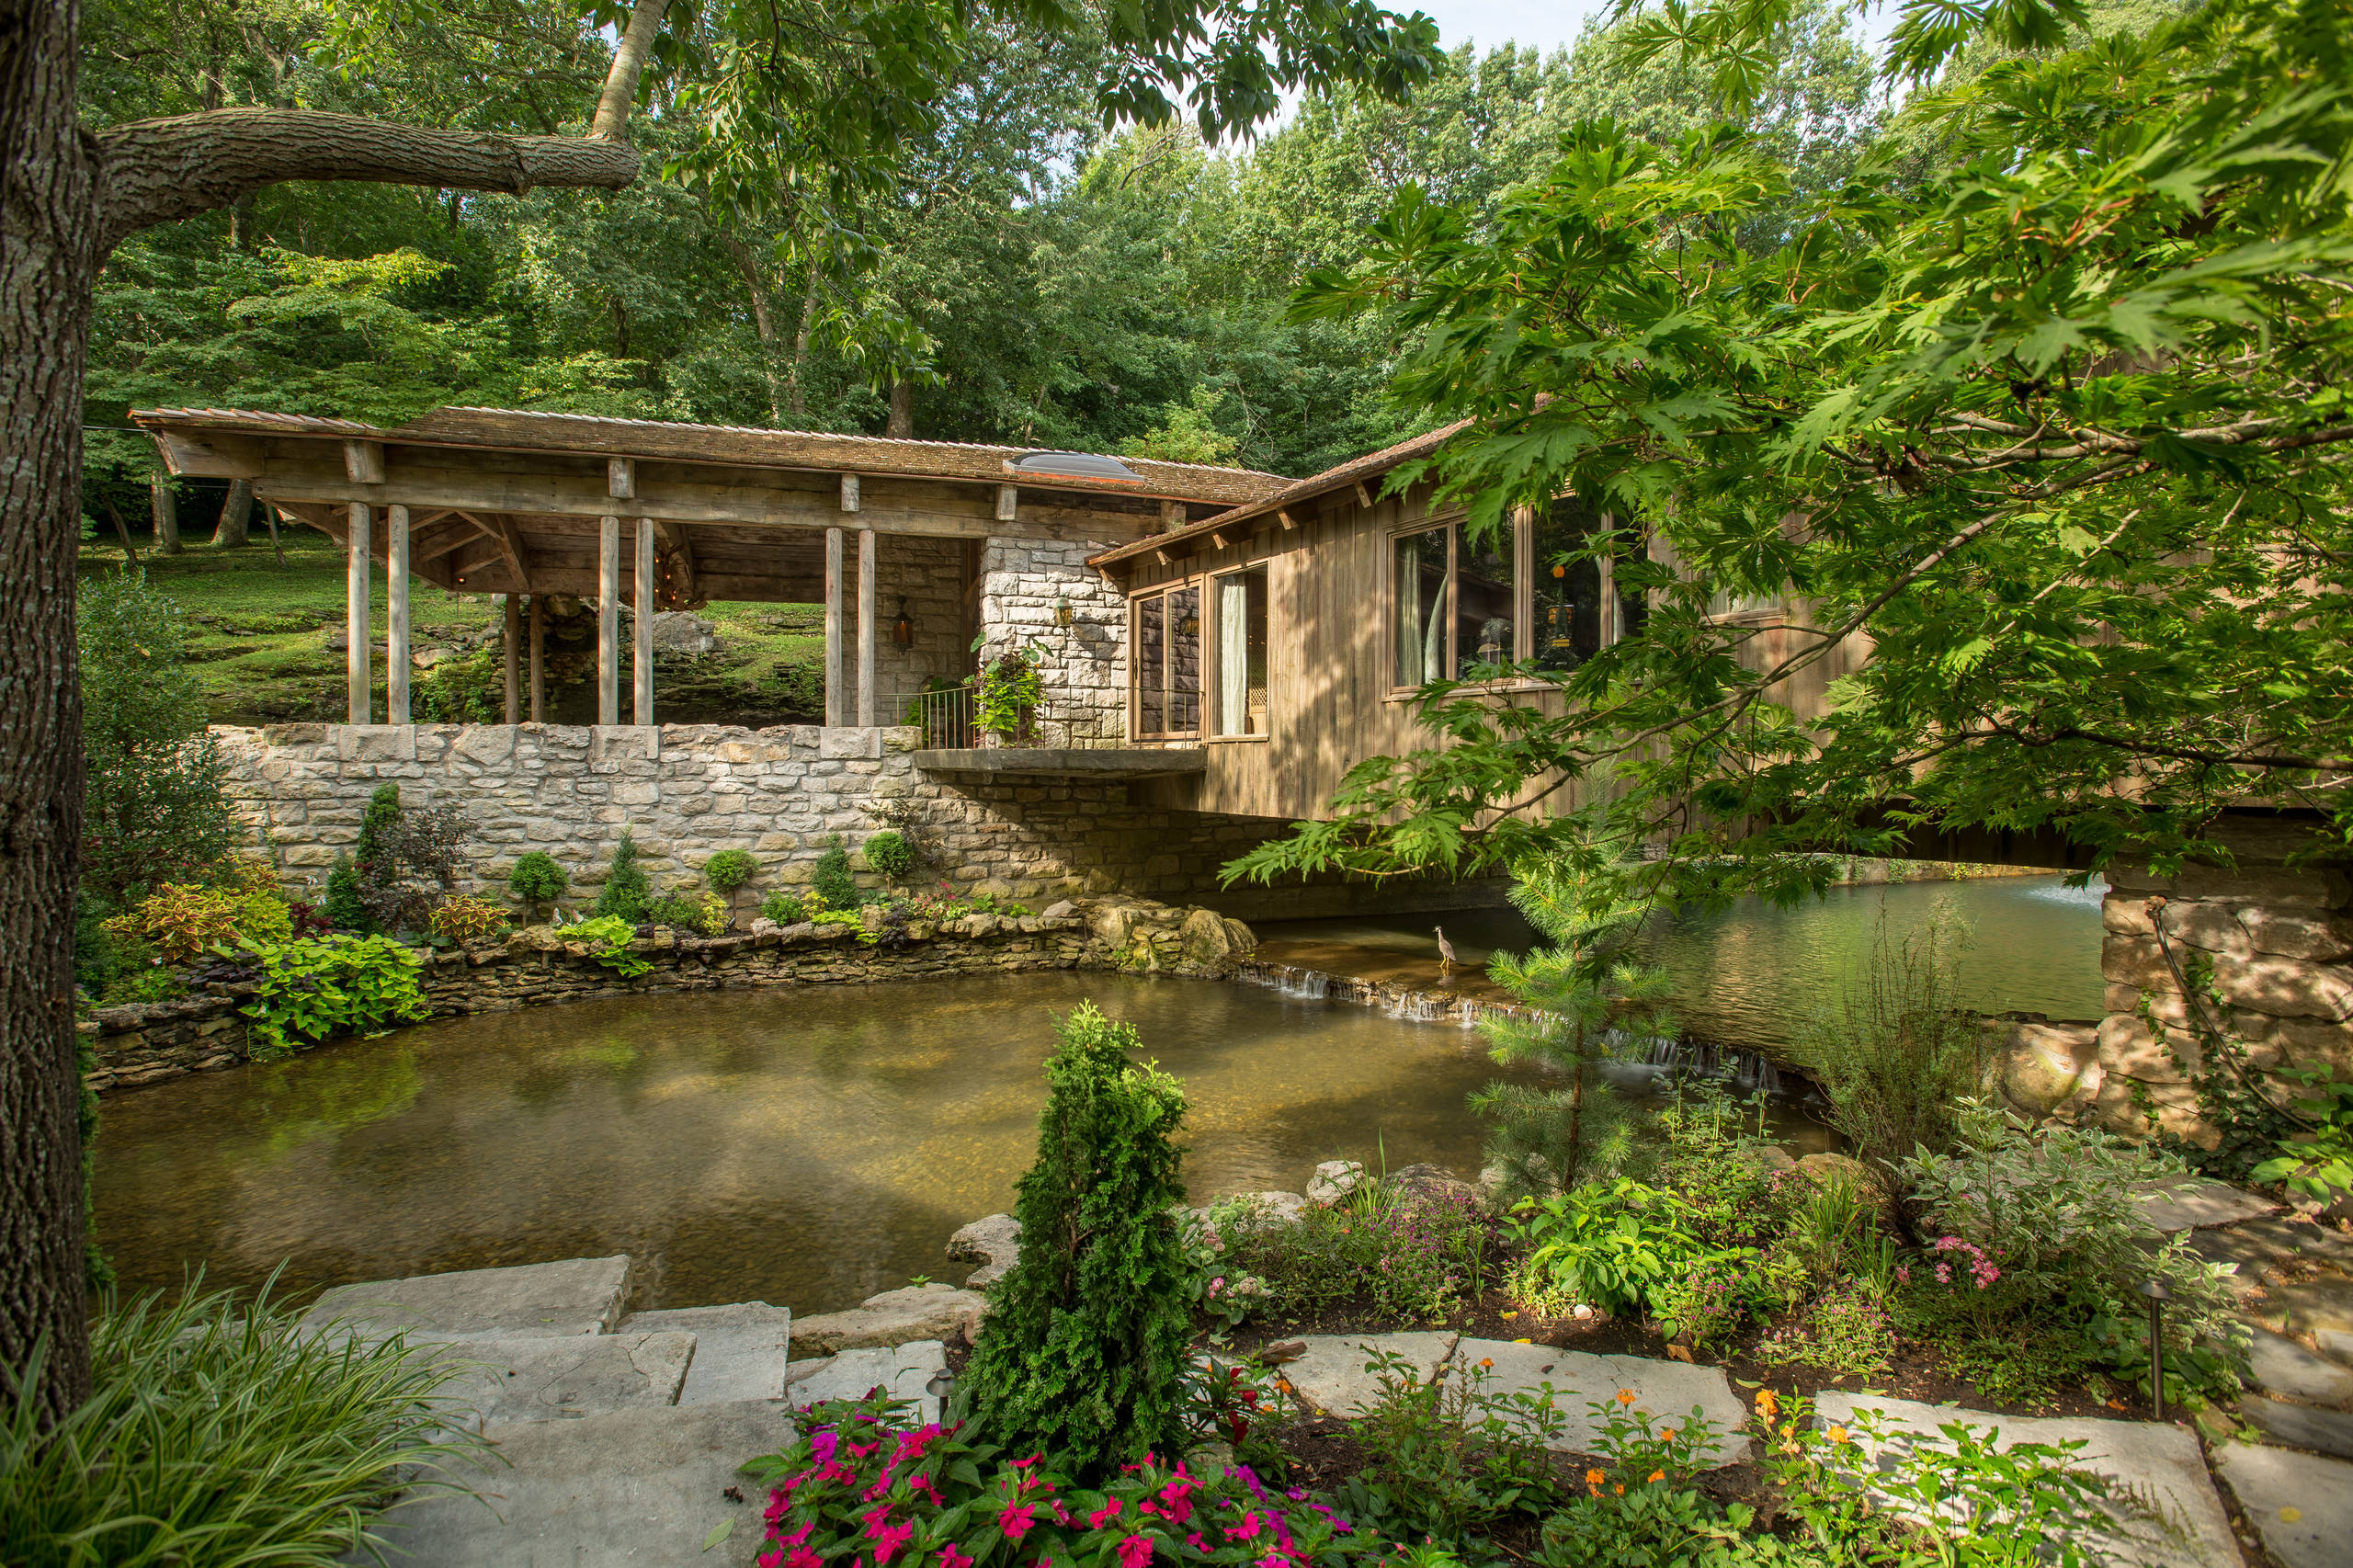 15 Stunning Rustic Landscape Designs That Will Take Your ... on Rustic Backyard Ideas id=32270